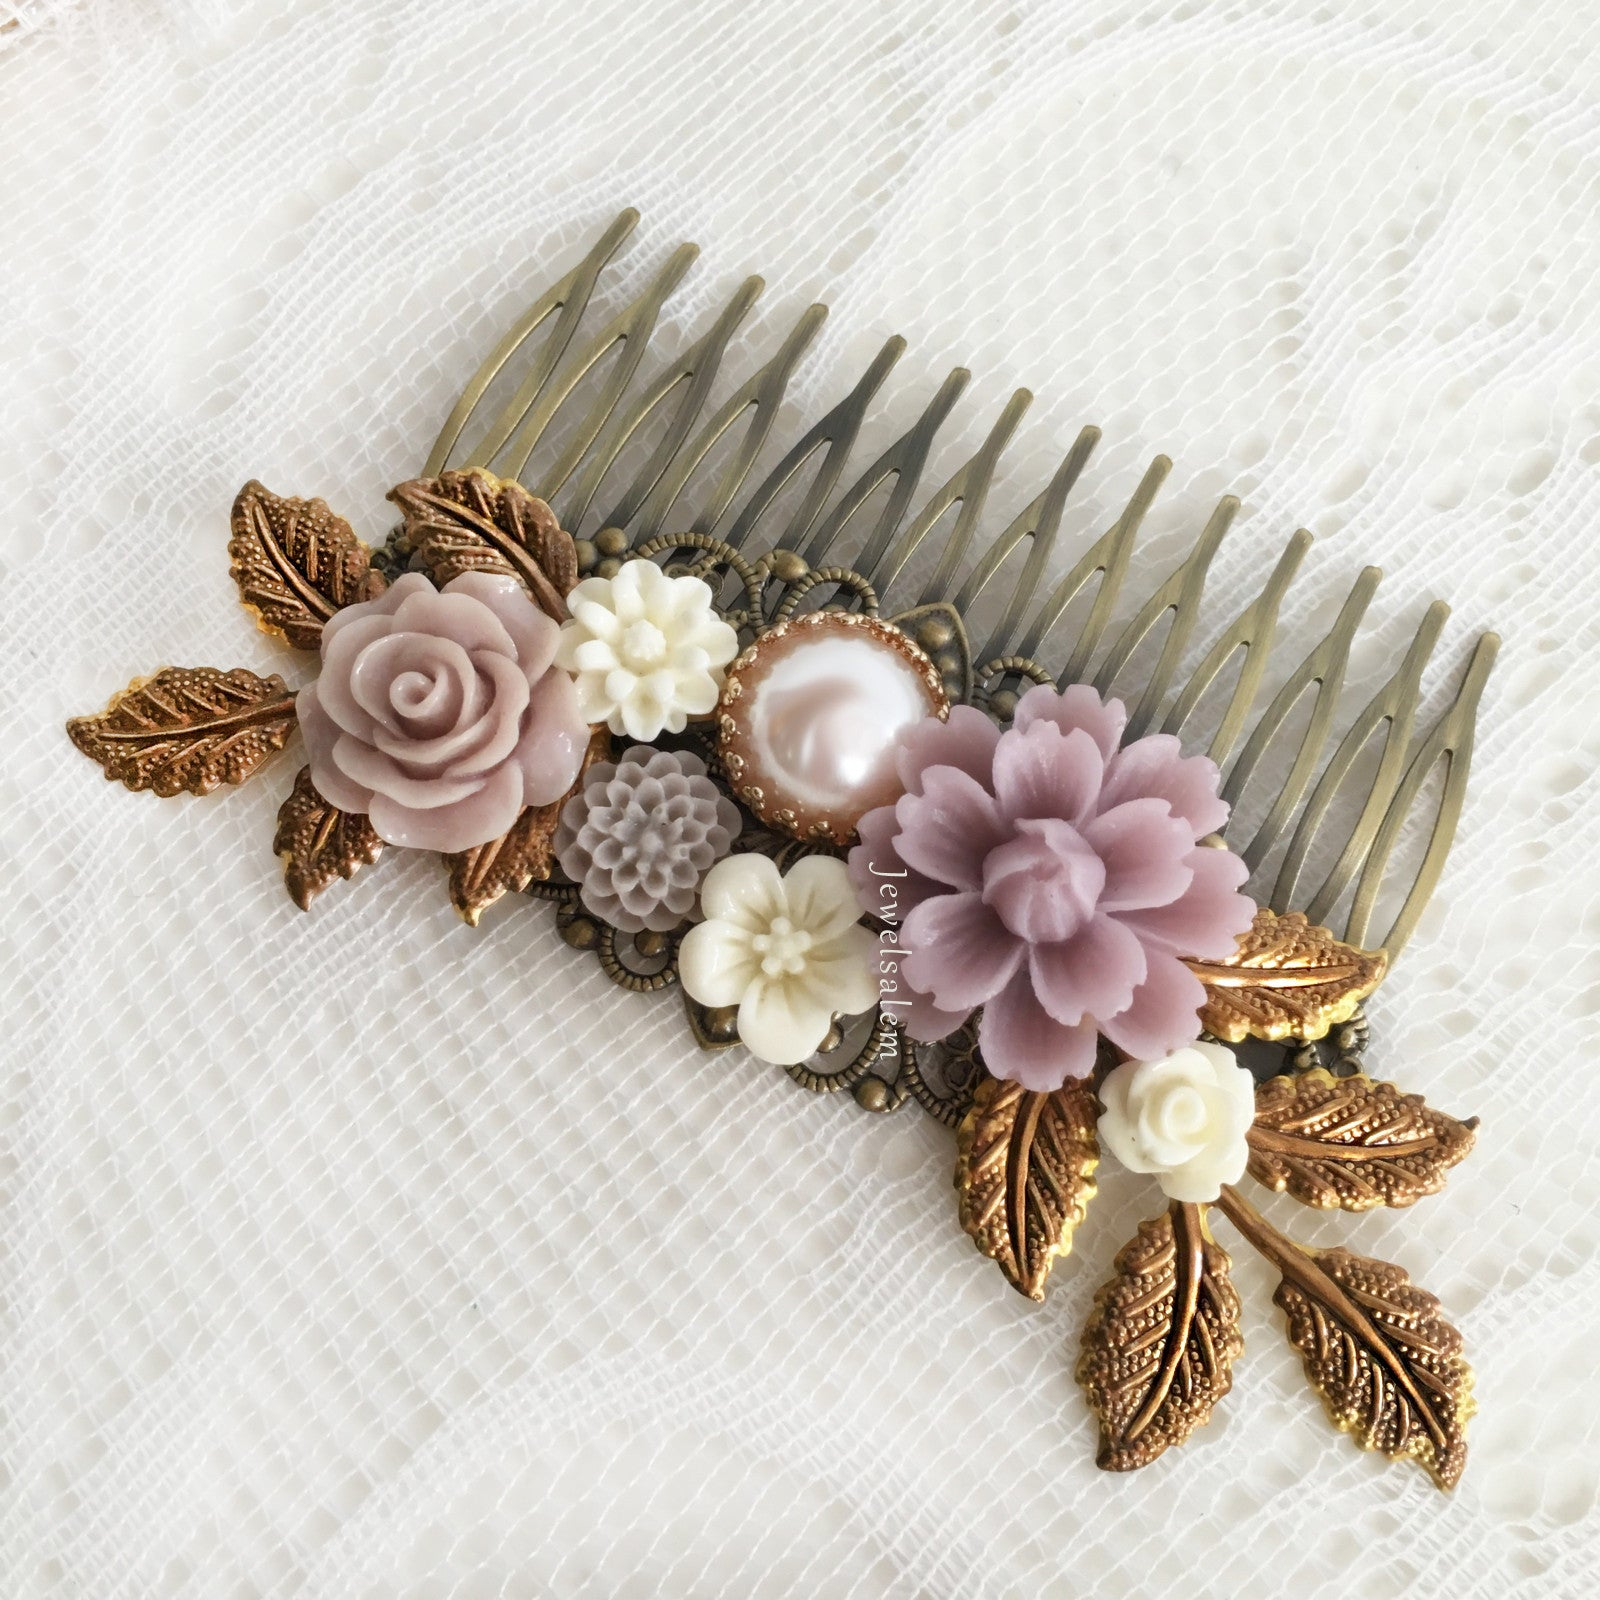 Bridal Hair Comb Lilac Wedding Hair Accessories Soft Purple Hair Slide for Bride Modern Chic Elegant Headpiece Rustic Wedding - Jewelsalem